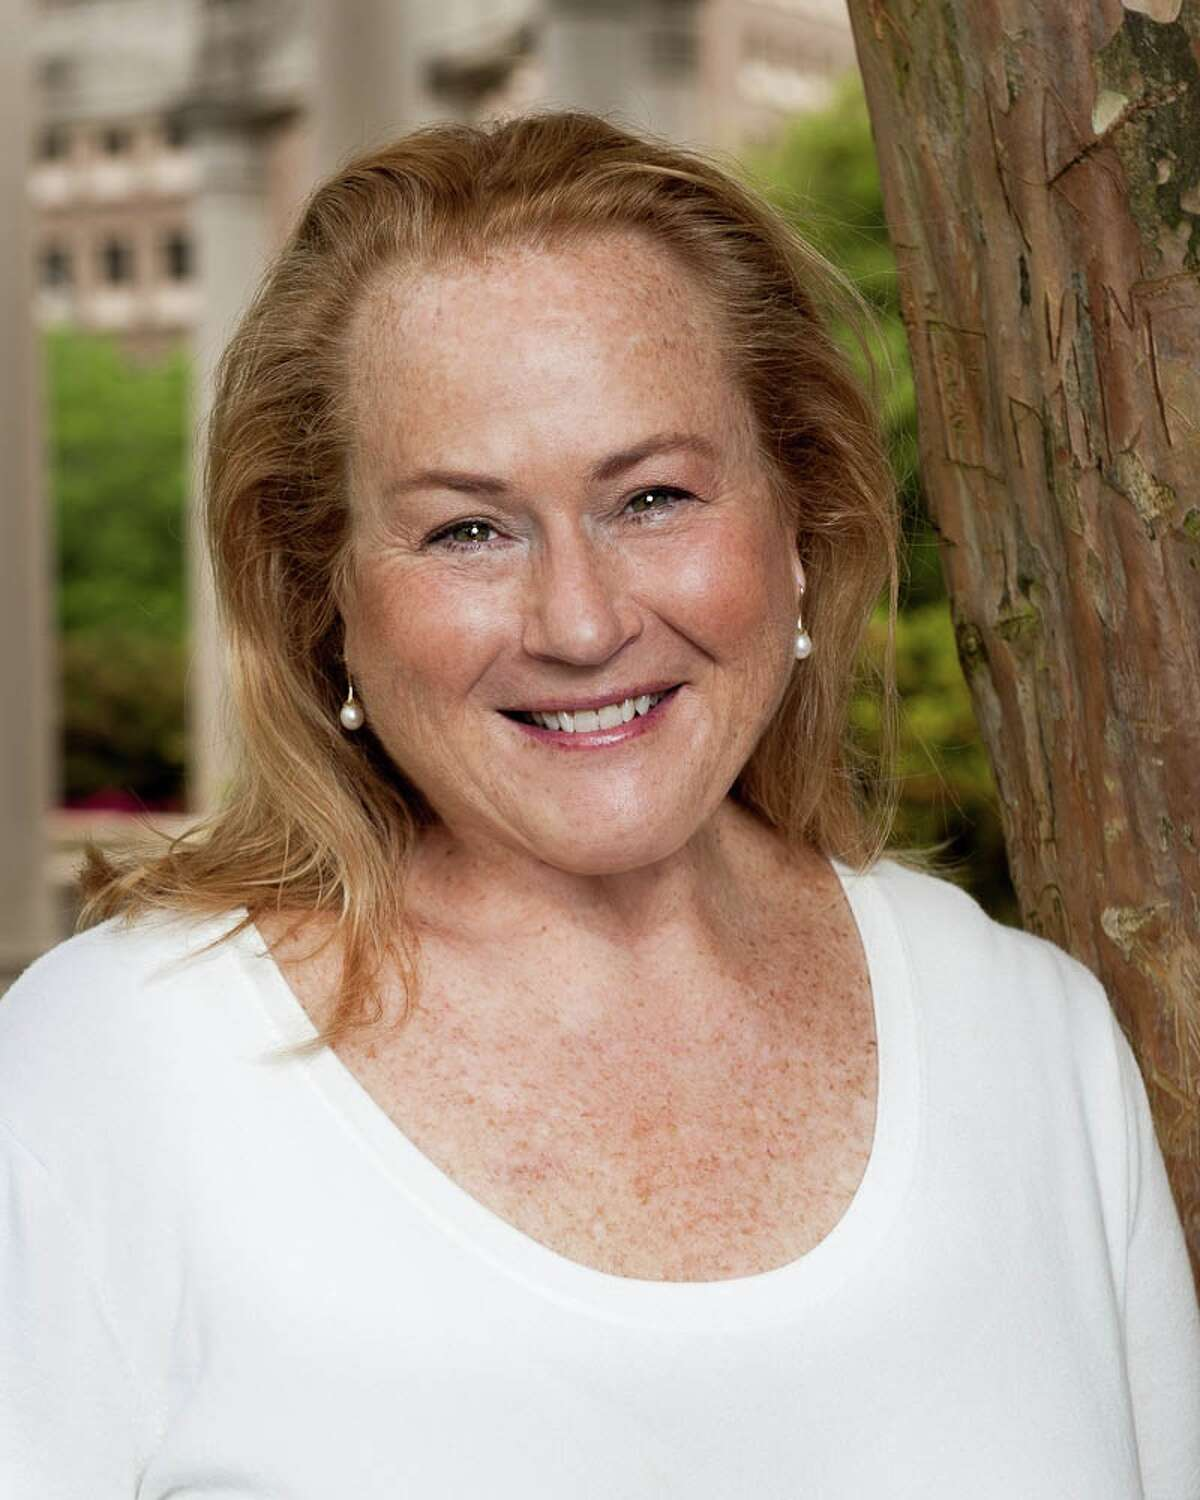 Ann Quinn Todd is the former director of the Eddy Scurlock Stroke Center at The Methodist Hospital, a member of the Texas Council on Cardiovascular Disease and Stroke, and a member of the American Heart Association s Texas State Advocacy Committee.